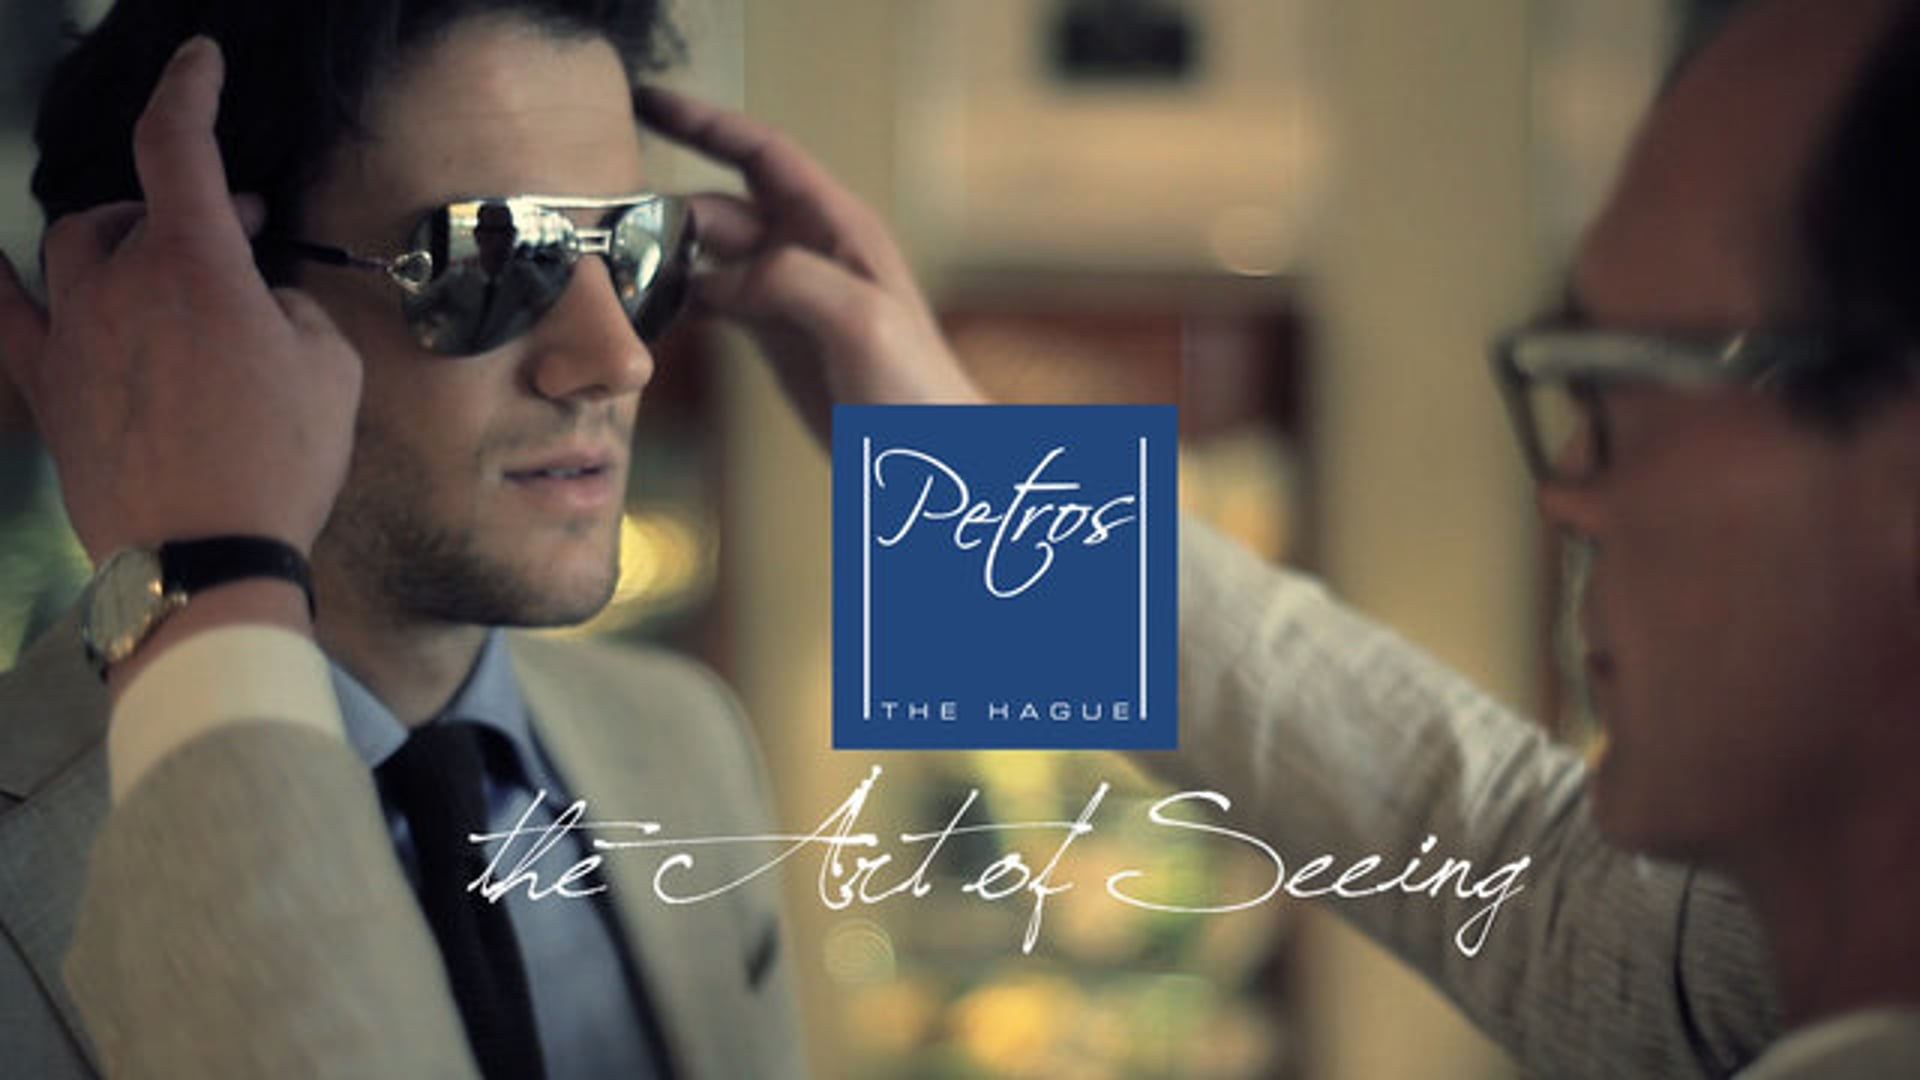 Petros the Hague manufacturing video